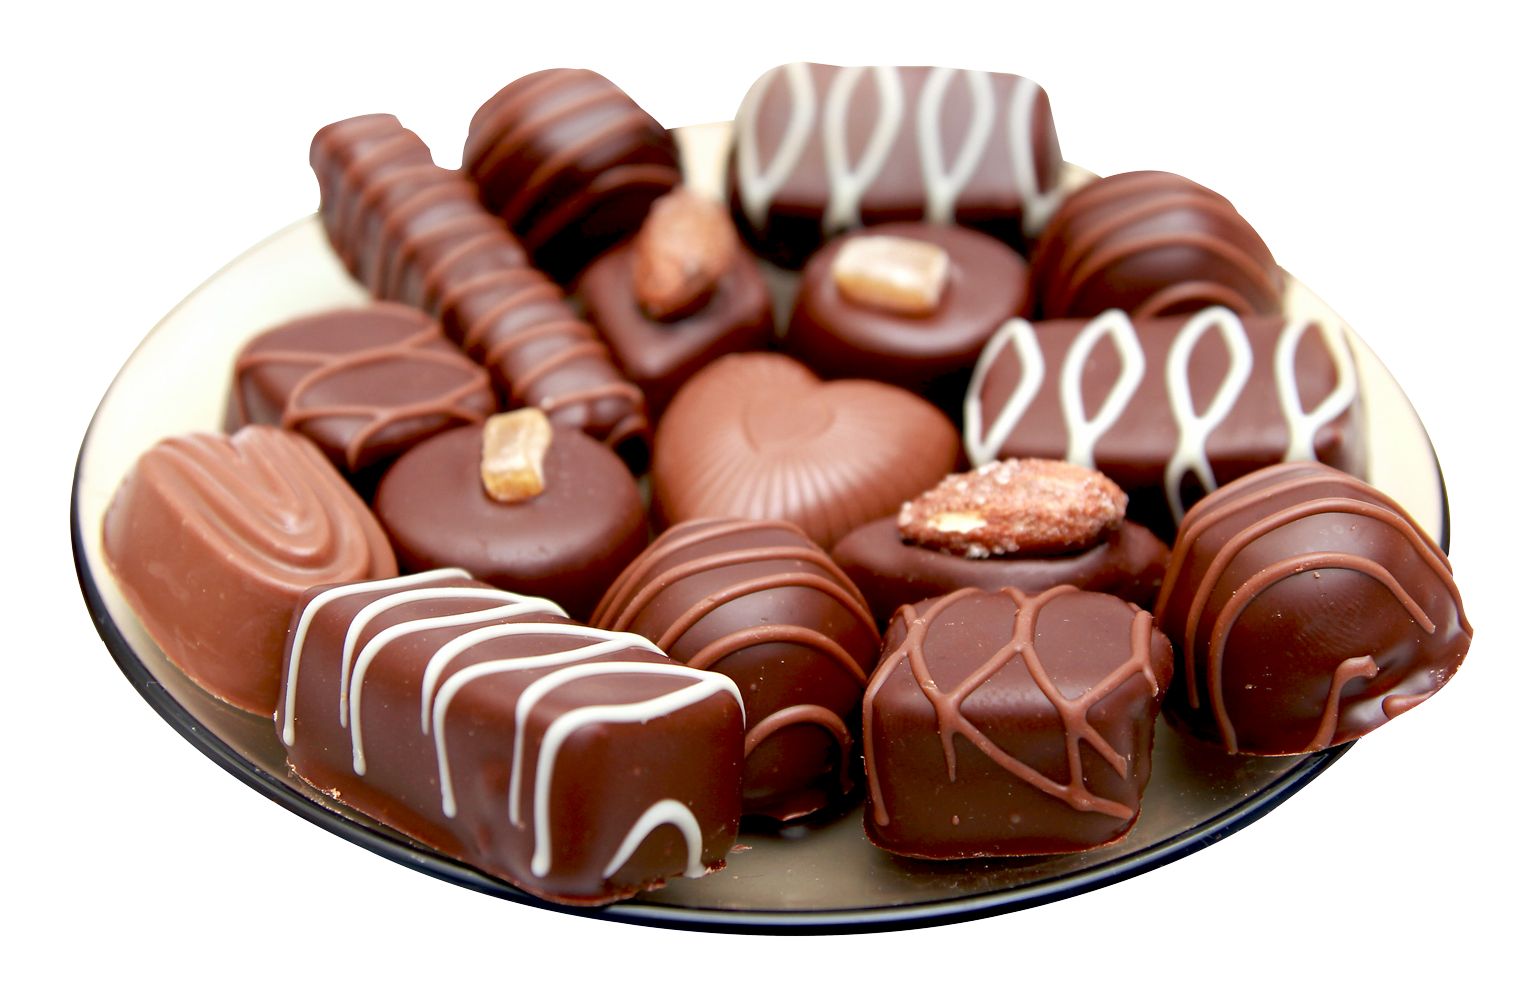 chocolate, chocolates plate png image pngpix #14381